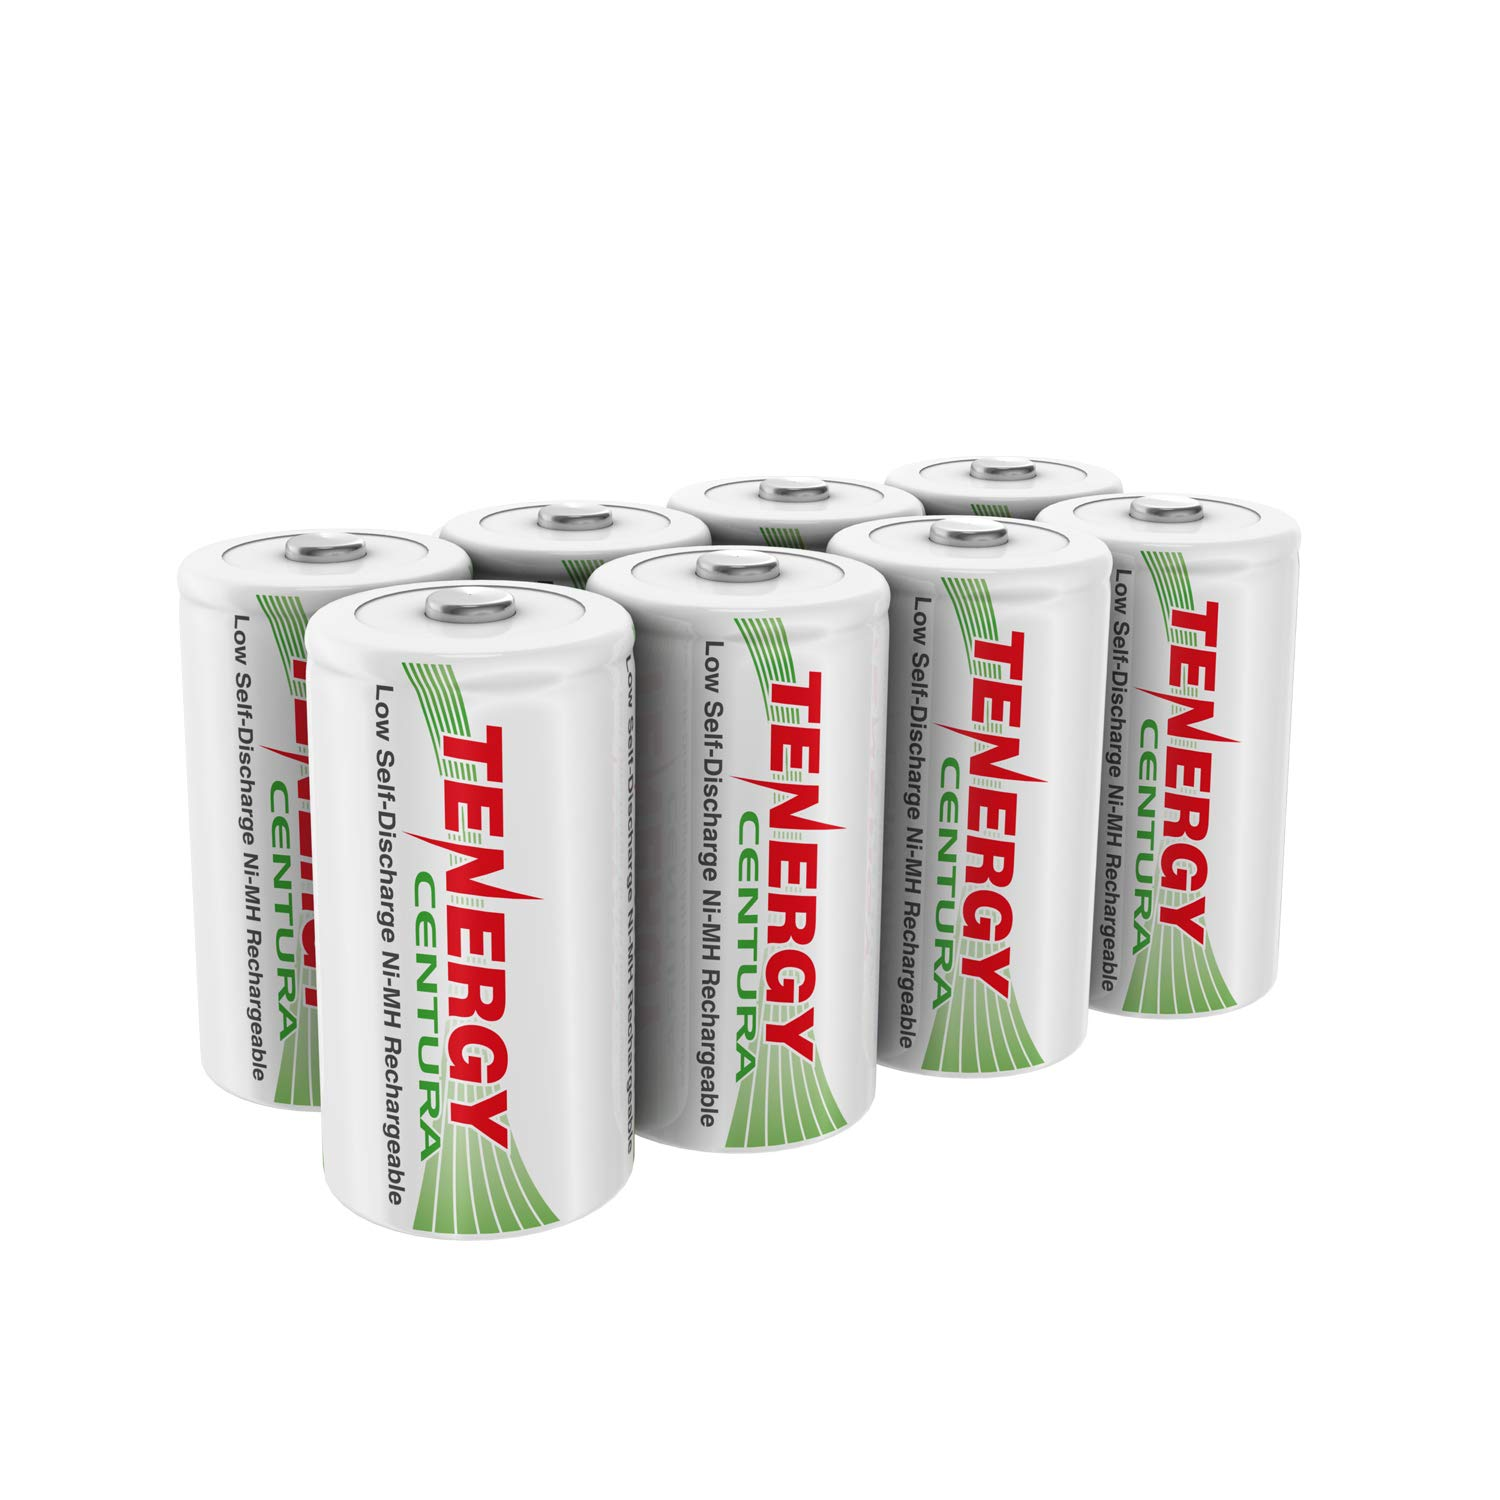 Tenergy Centura 1.2V NiMH Rechargeable D Battery, 8000mAh Low Self Discharge D Cell Batteries, Pre-Charged D Size Battery, 8 Pack - UL Certified by Tenergy